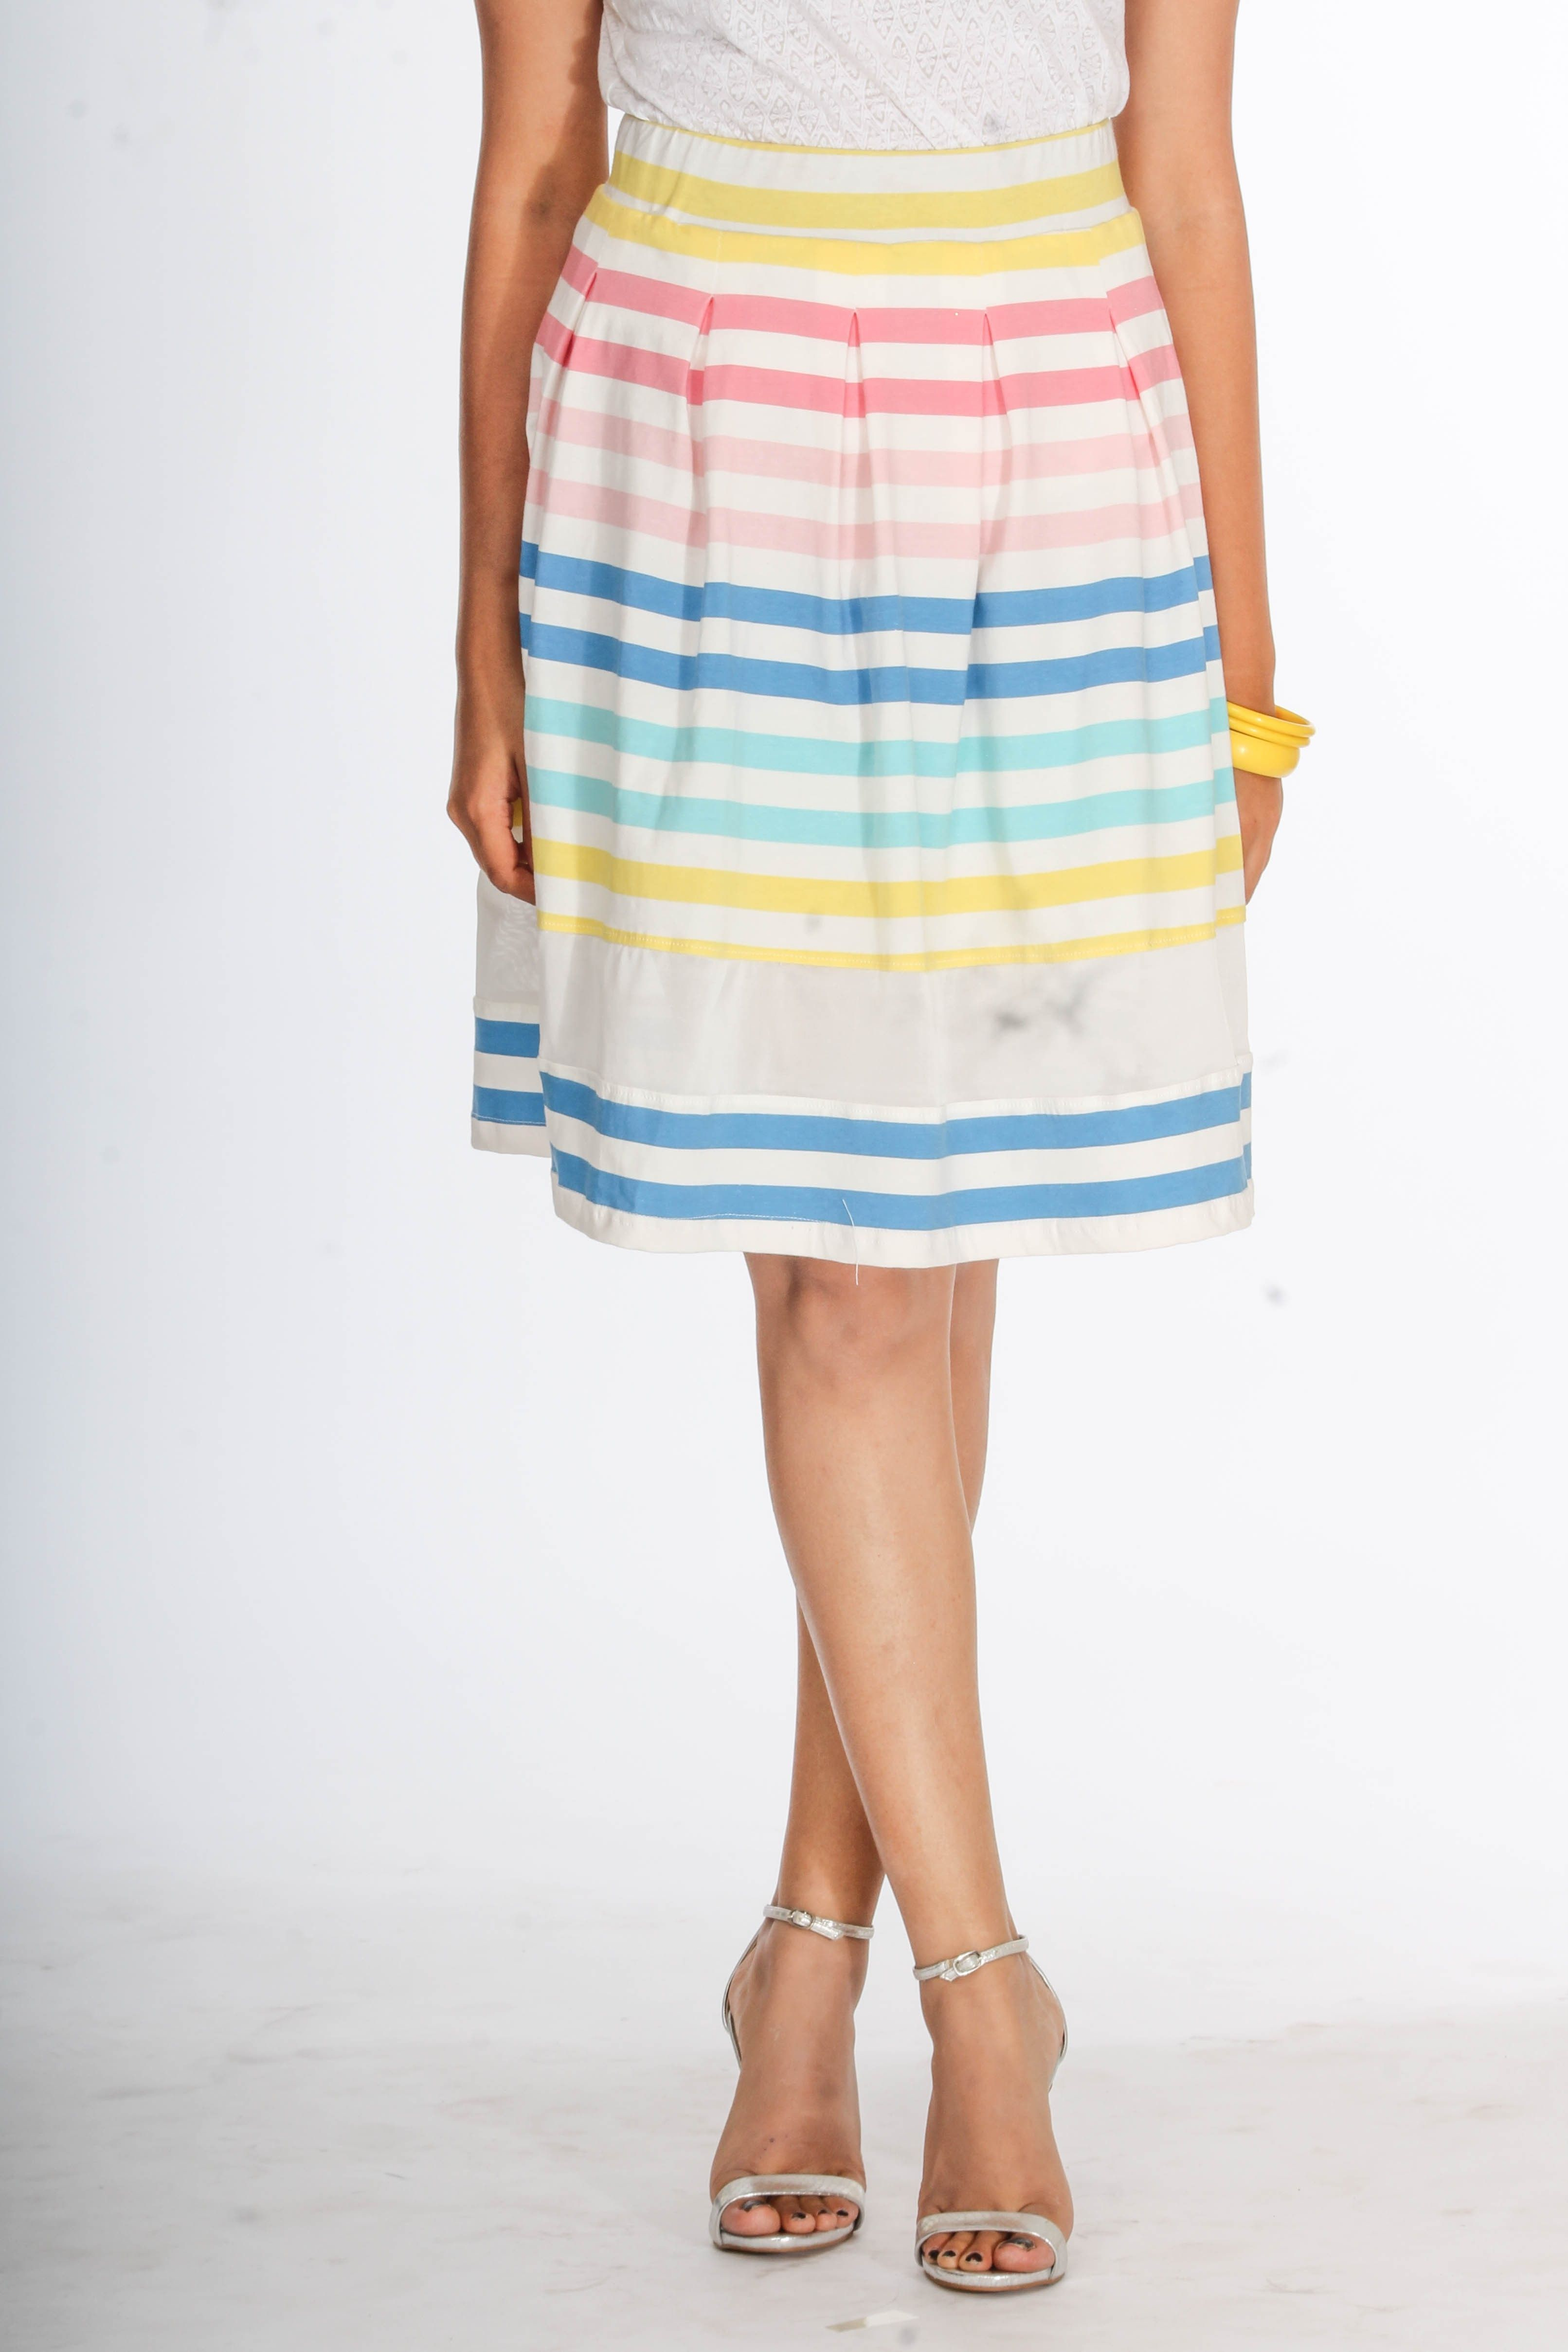 391f98ffd437 Young Trendz Striped Women s Pleated Skirt - Buy Multicolor Young Trendz  Striped Women s Pleated Skirt Online at Best Prices in India